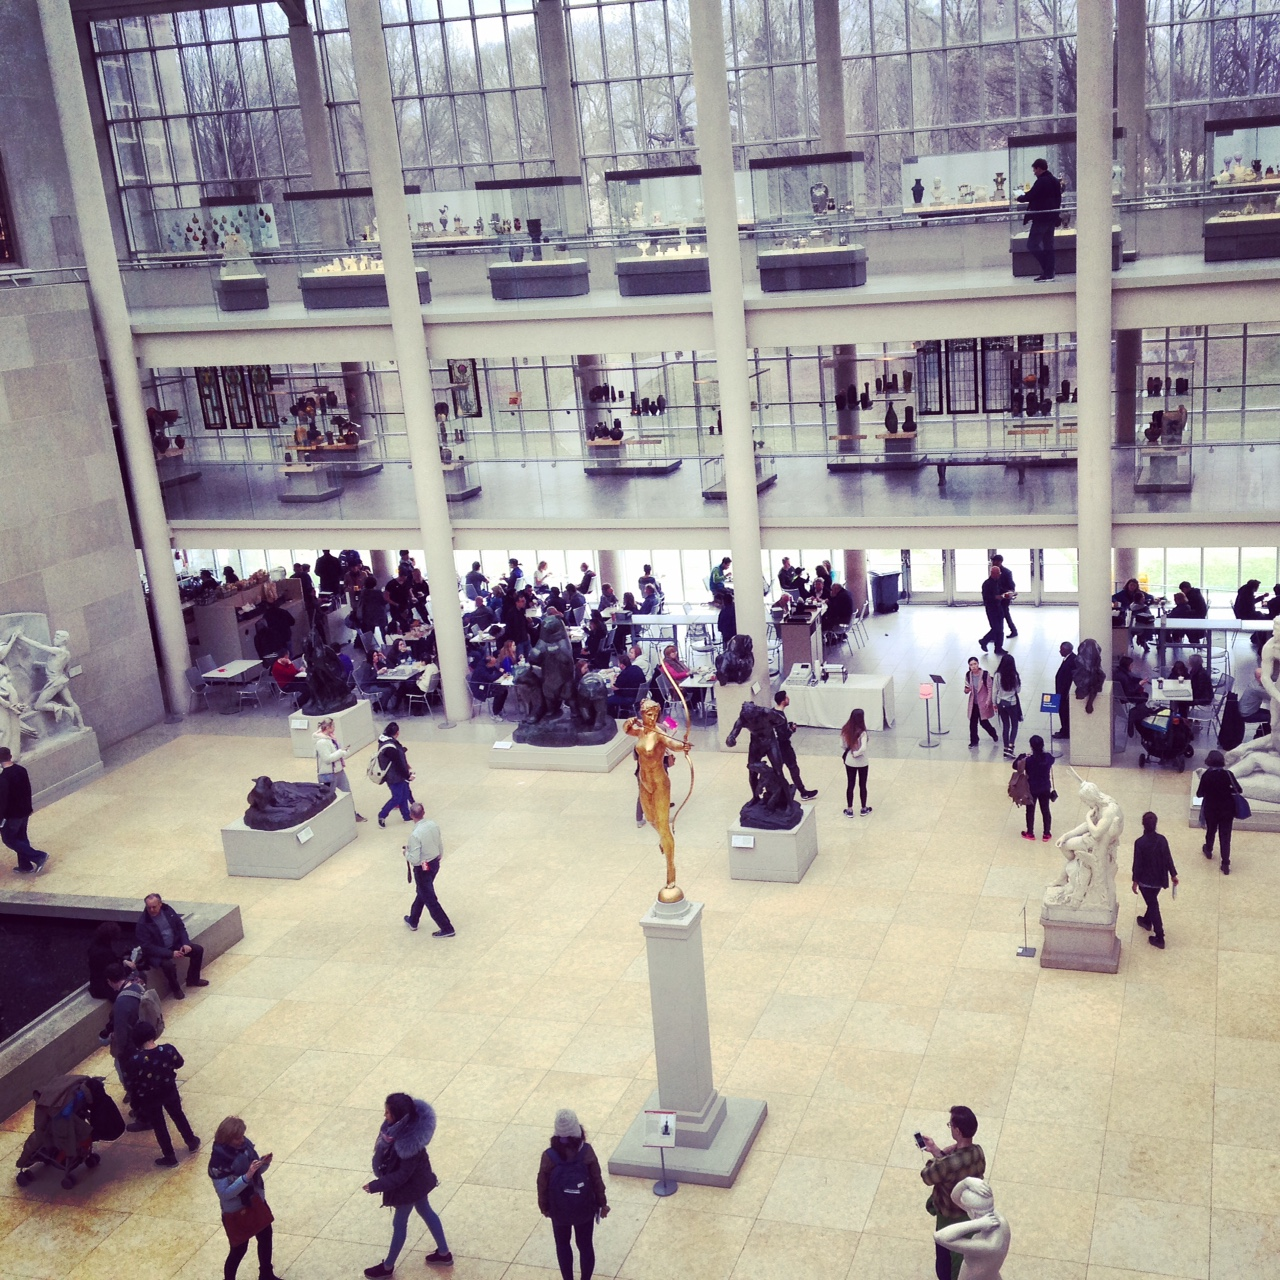 comparison of the met and guggenheim Both brooklyn museum and the met cloisters are praised by reviewers writing for major  overall, the met cloisters is preferred by most reviewers compared to .